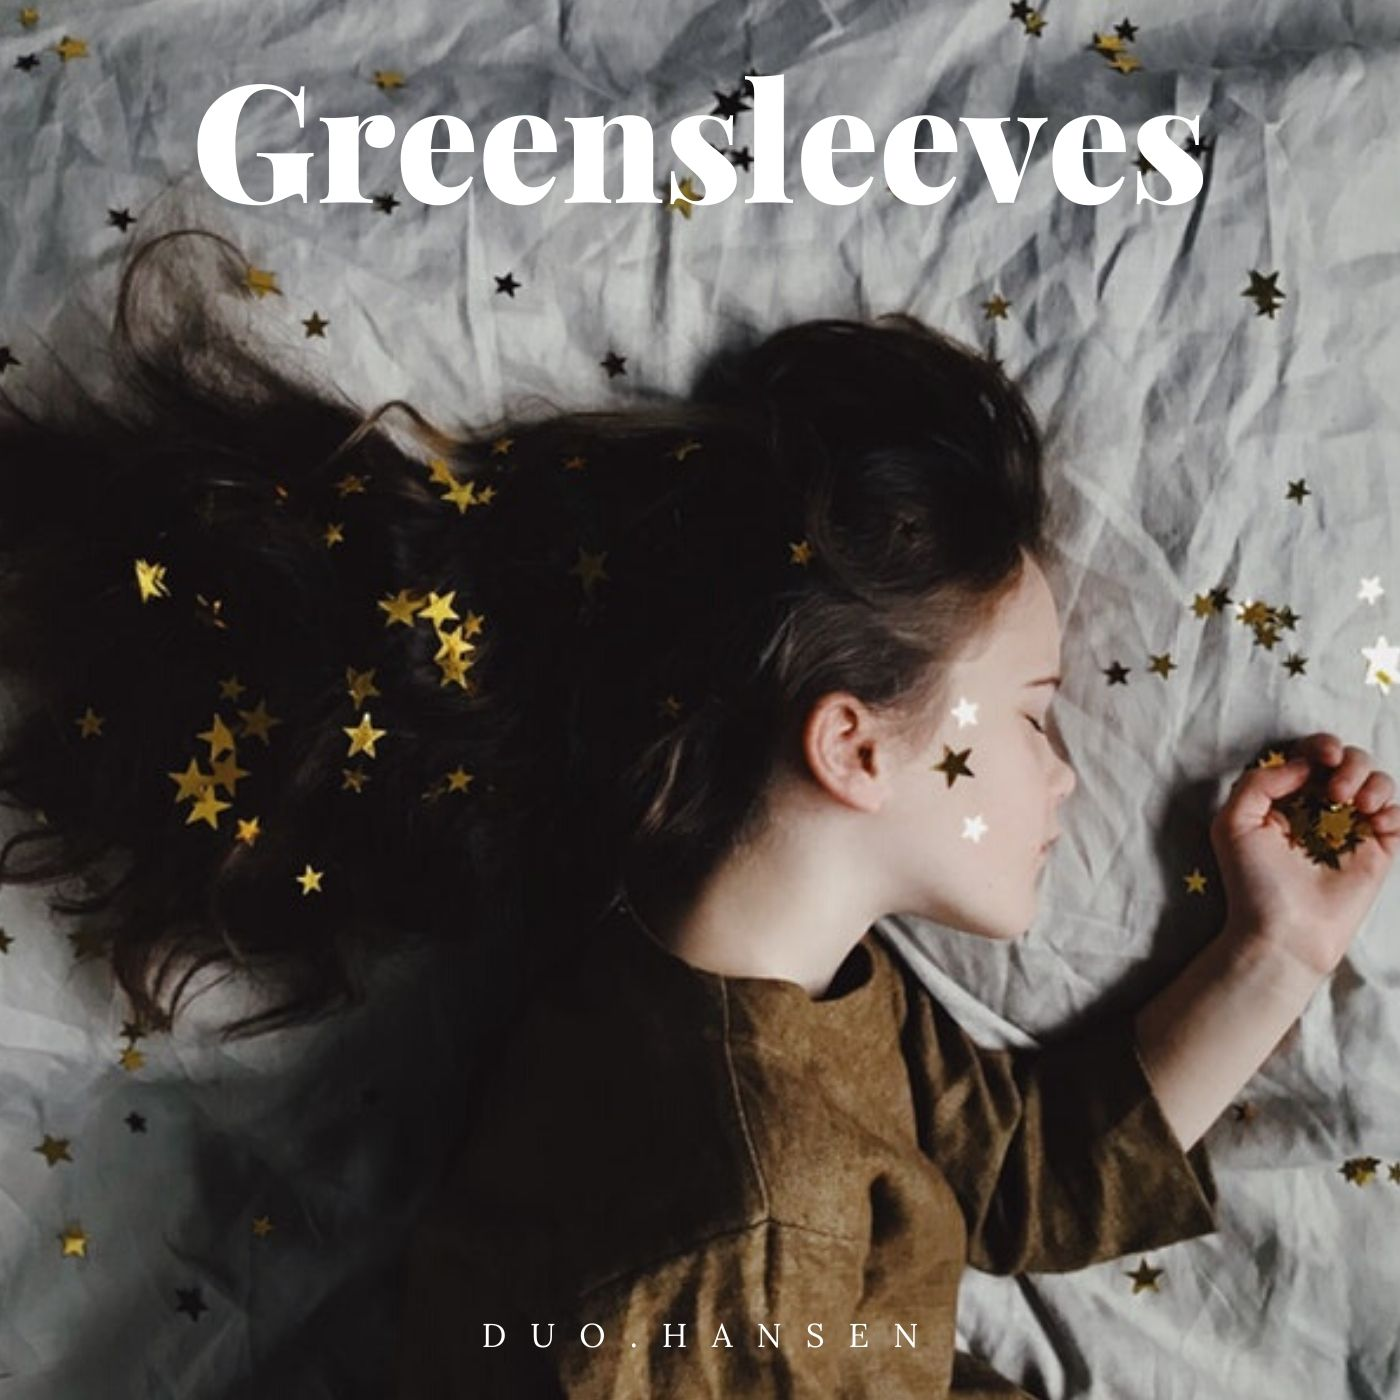 Greensleves